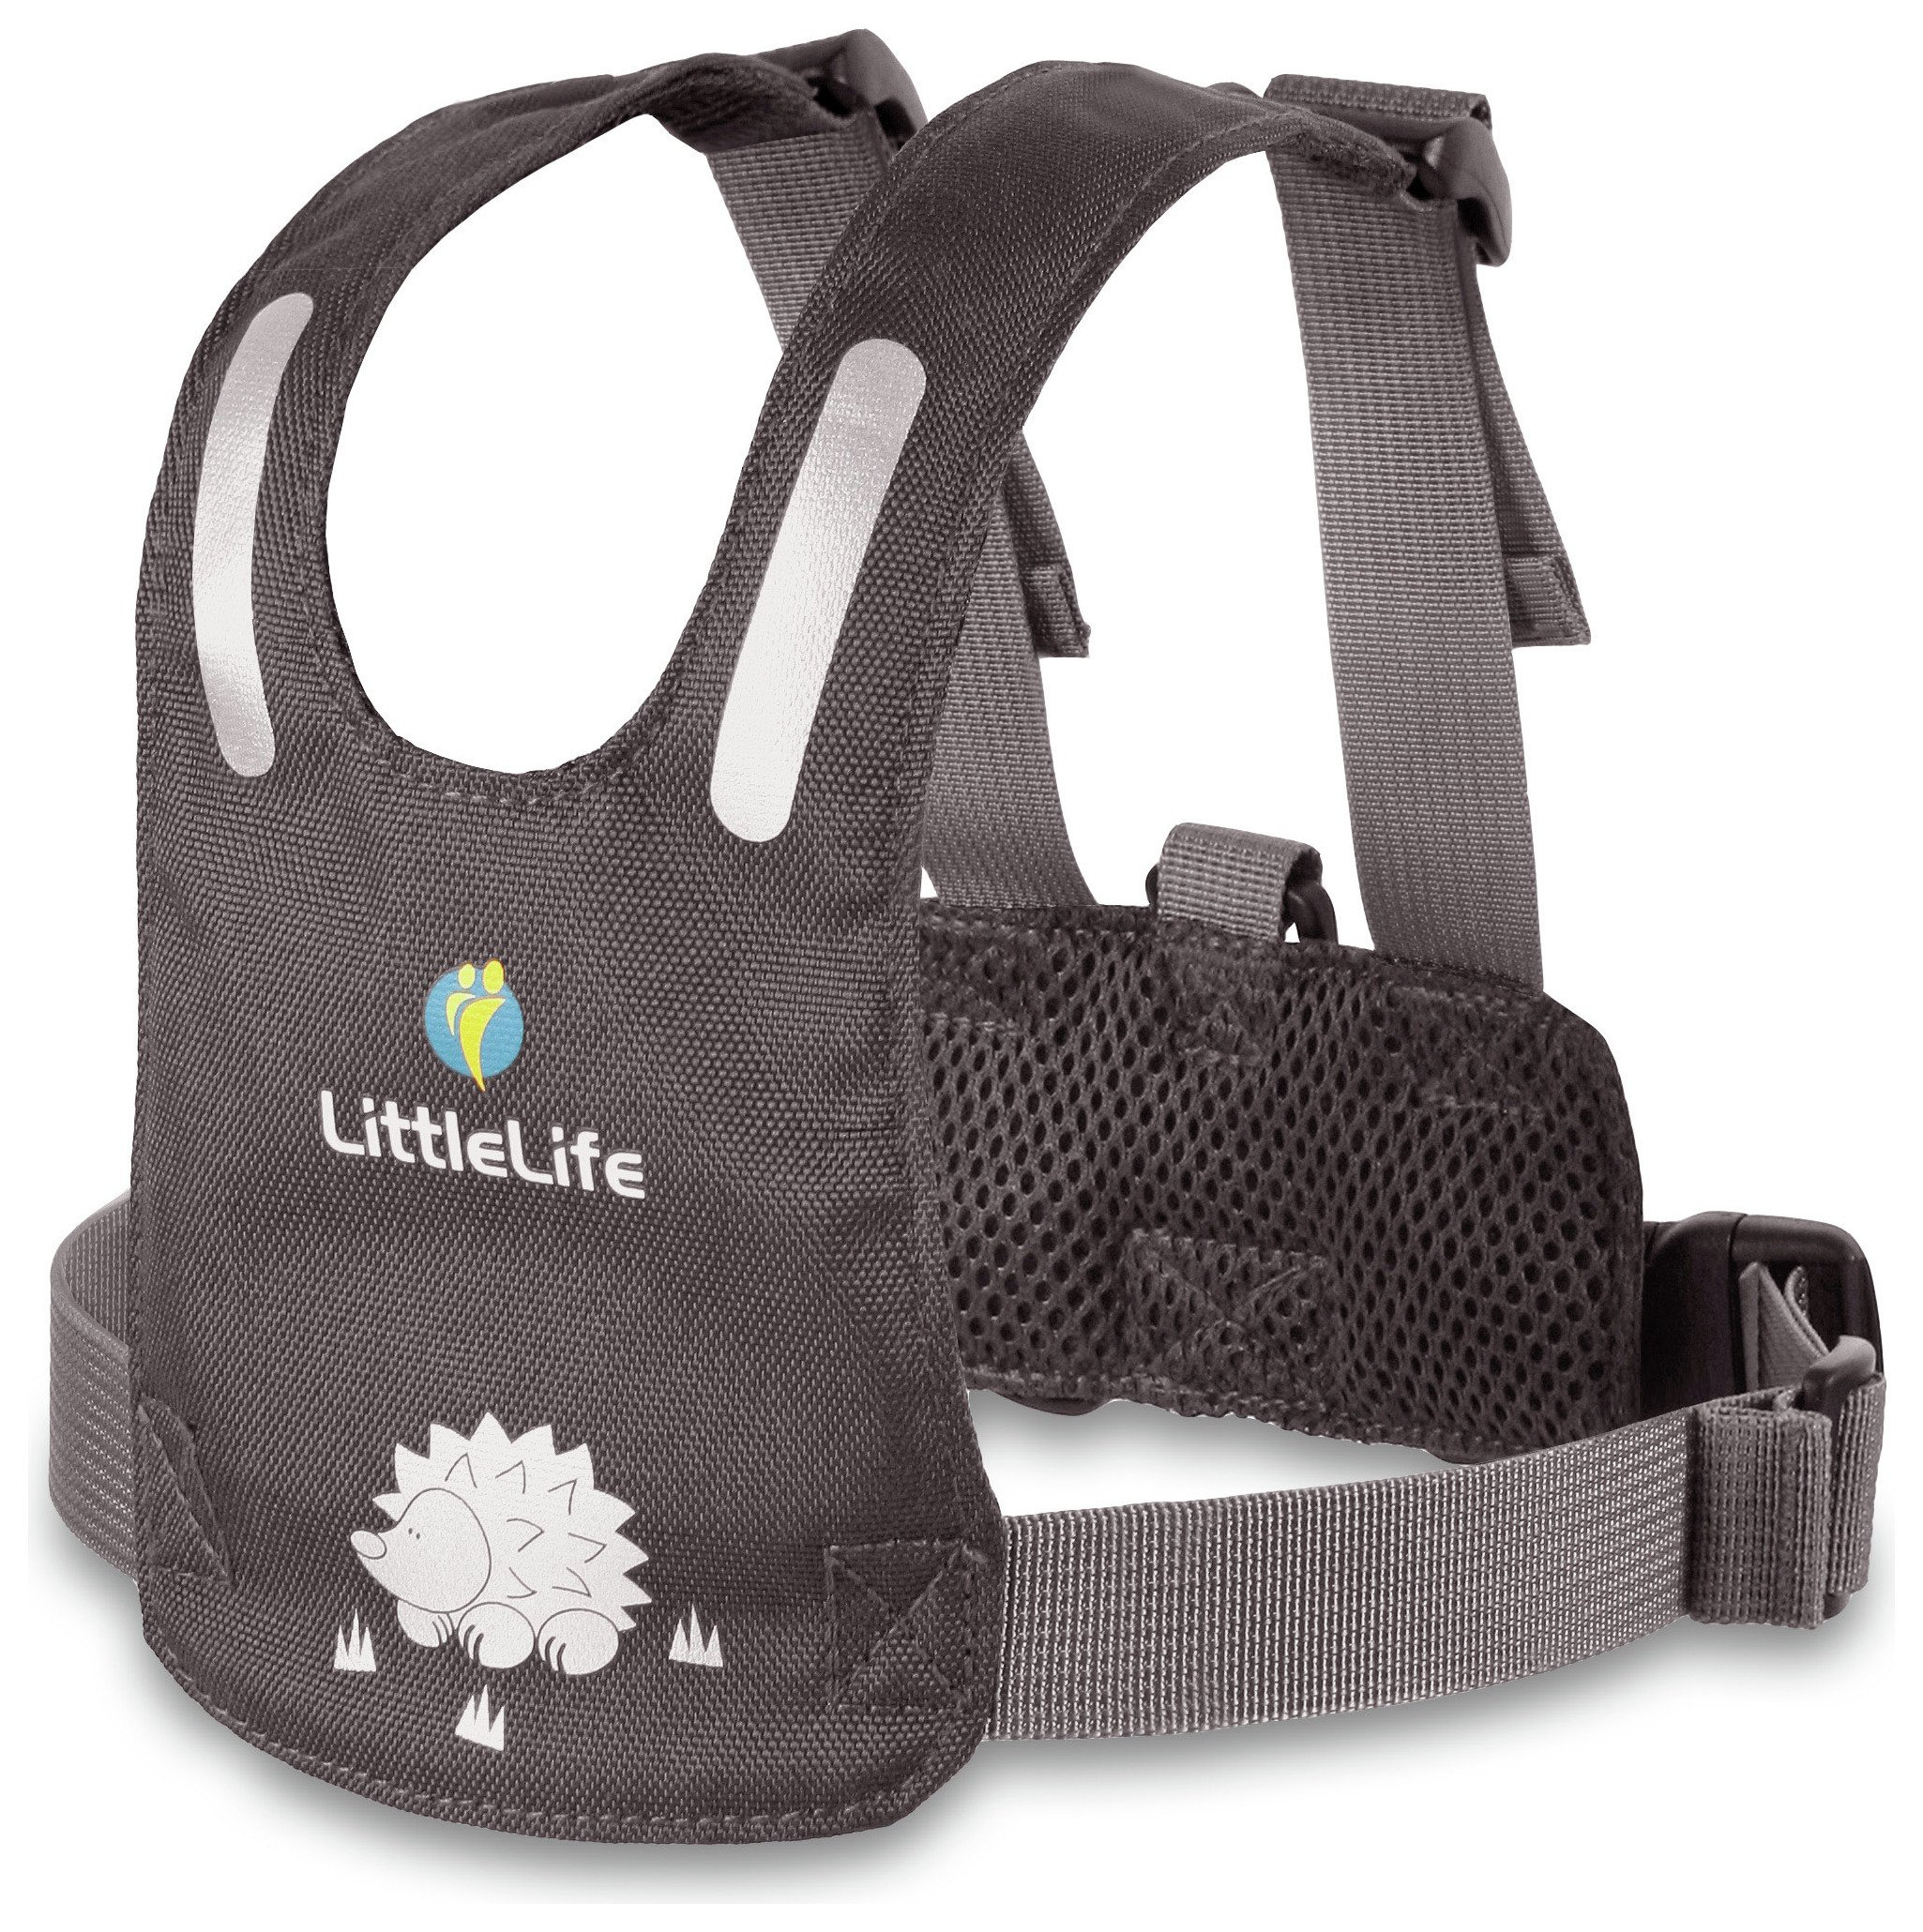 Image of Littlelife Safety Harness - Owl